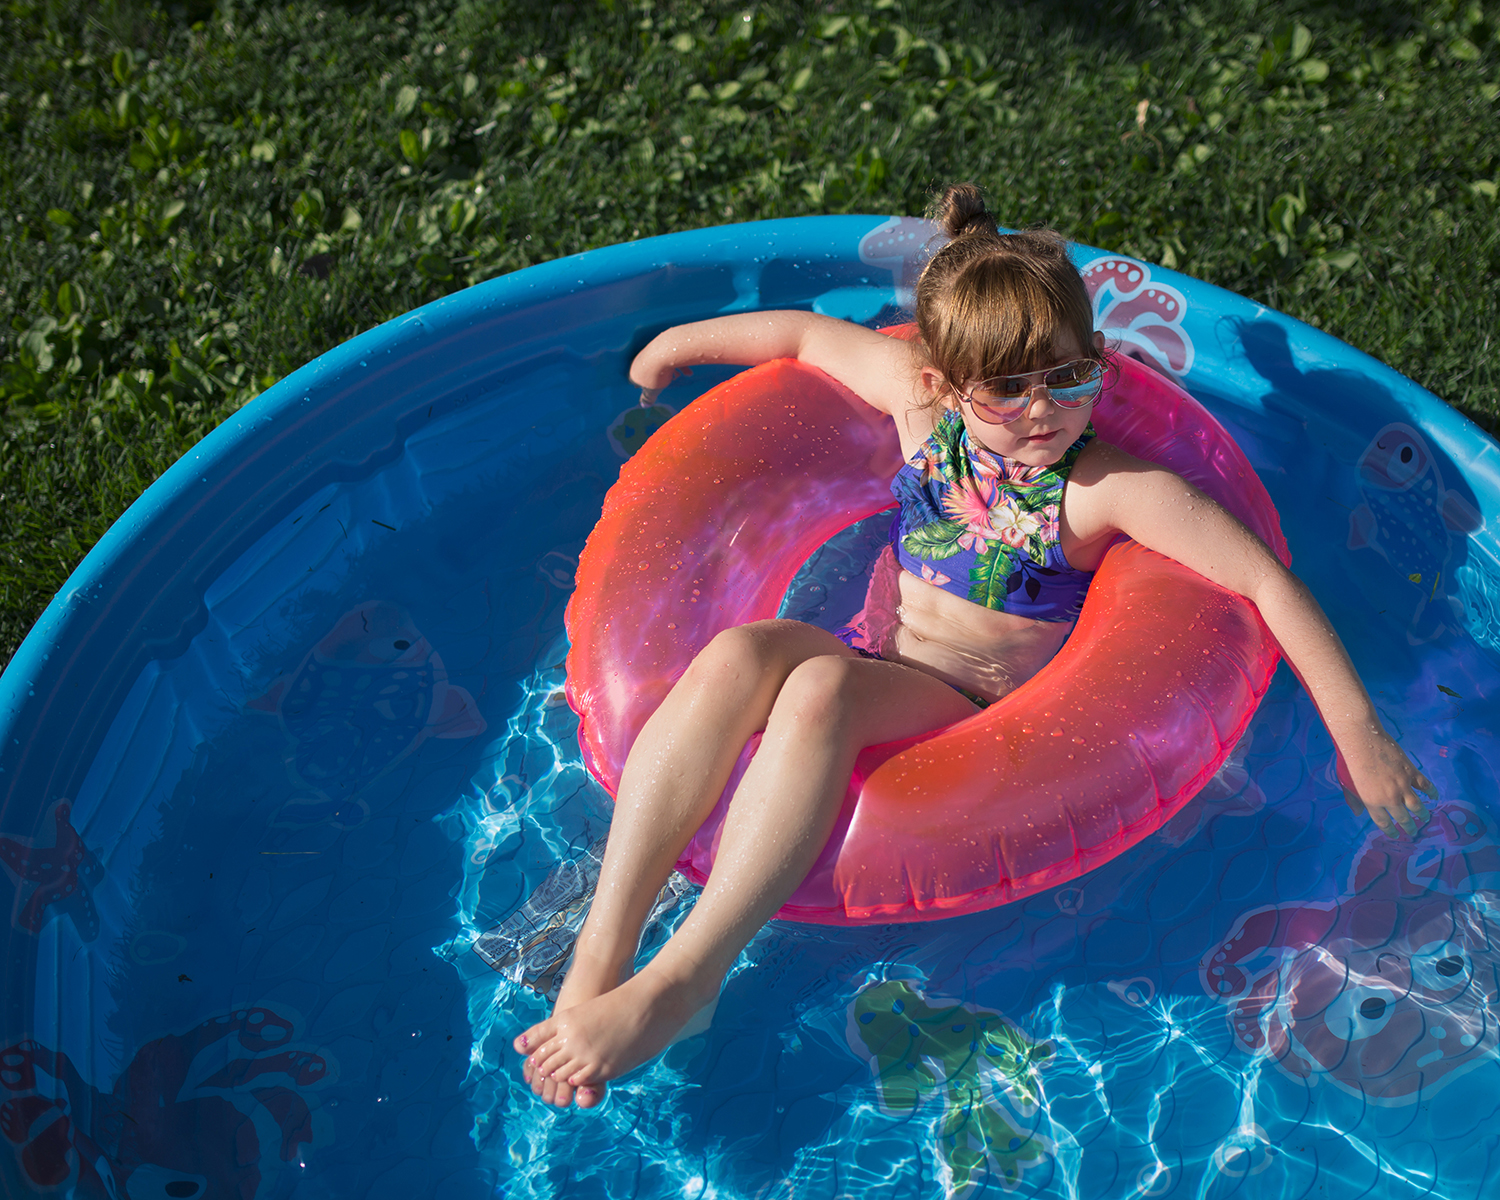 nora in kiddie pool sRGB for web.jpg